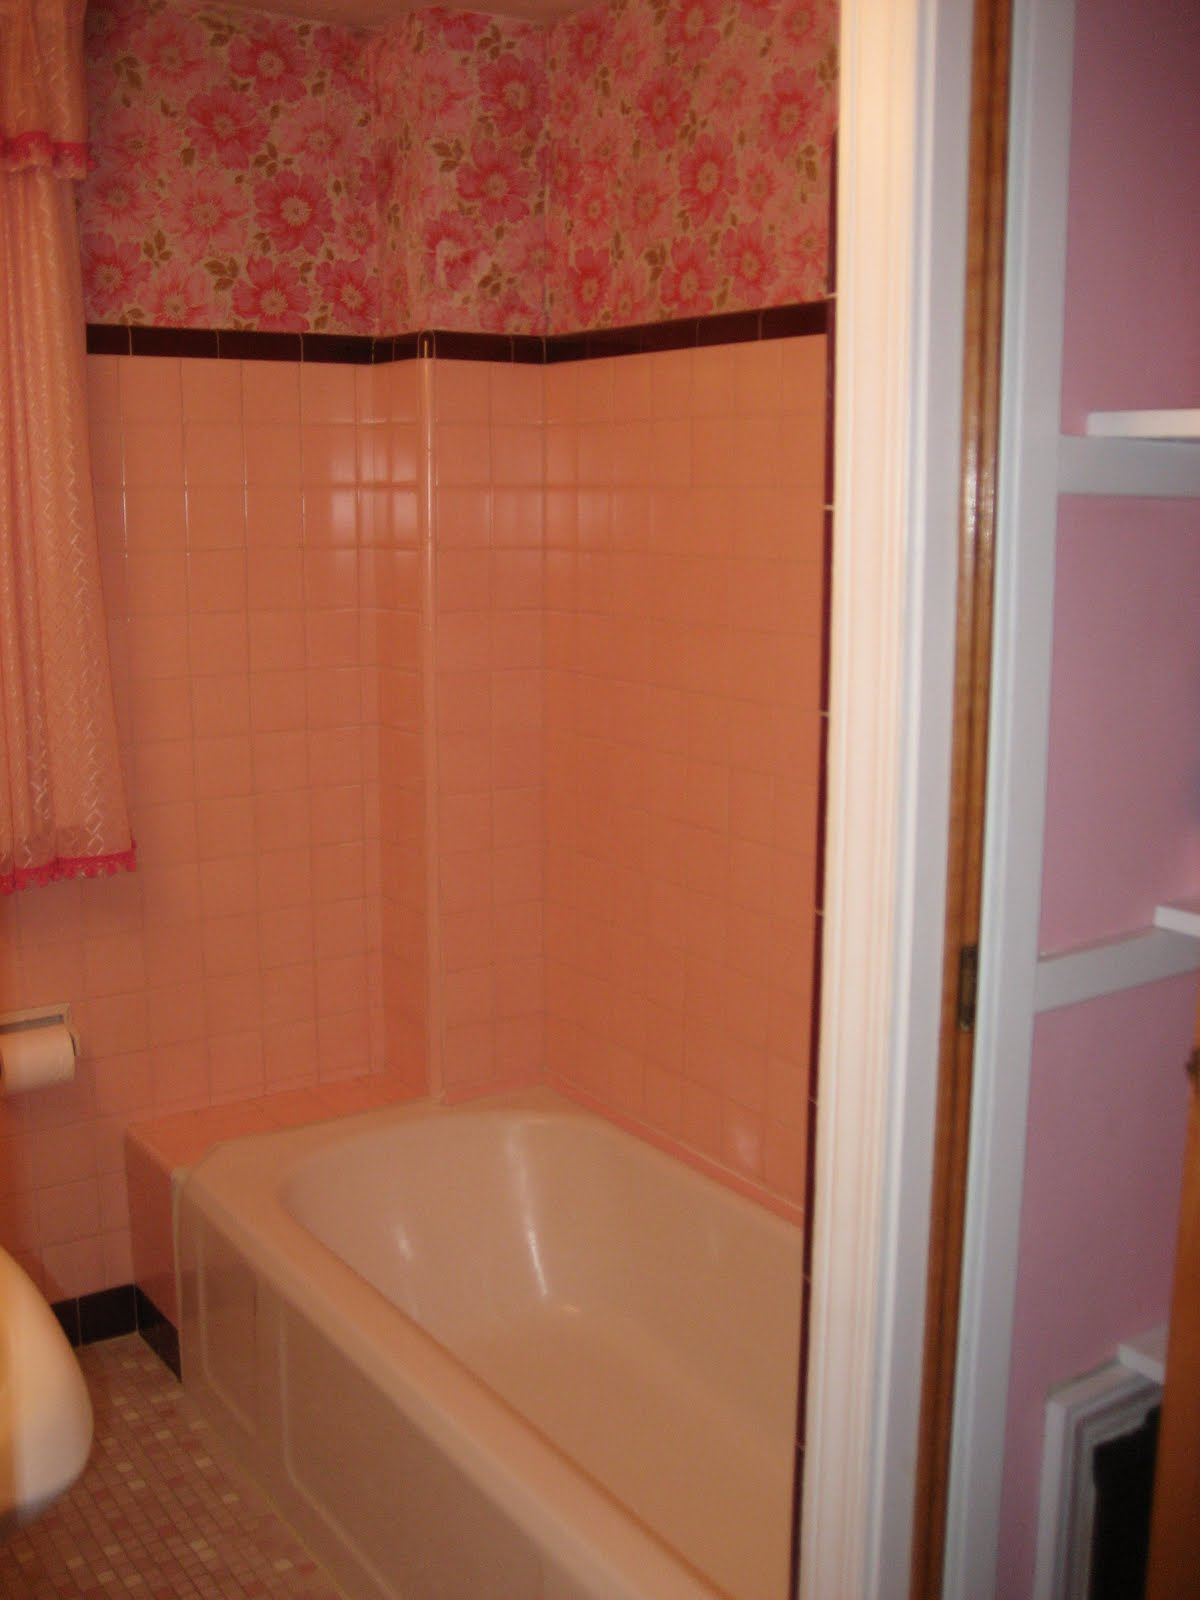 West Pear Avenue: No More Pink Bathroom